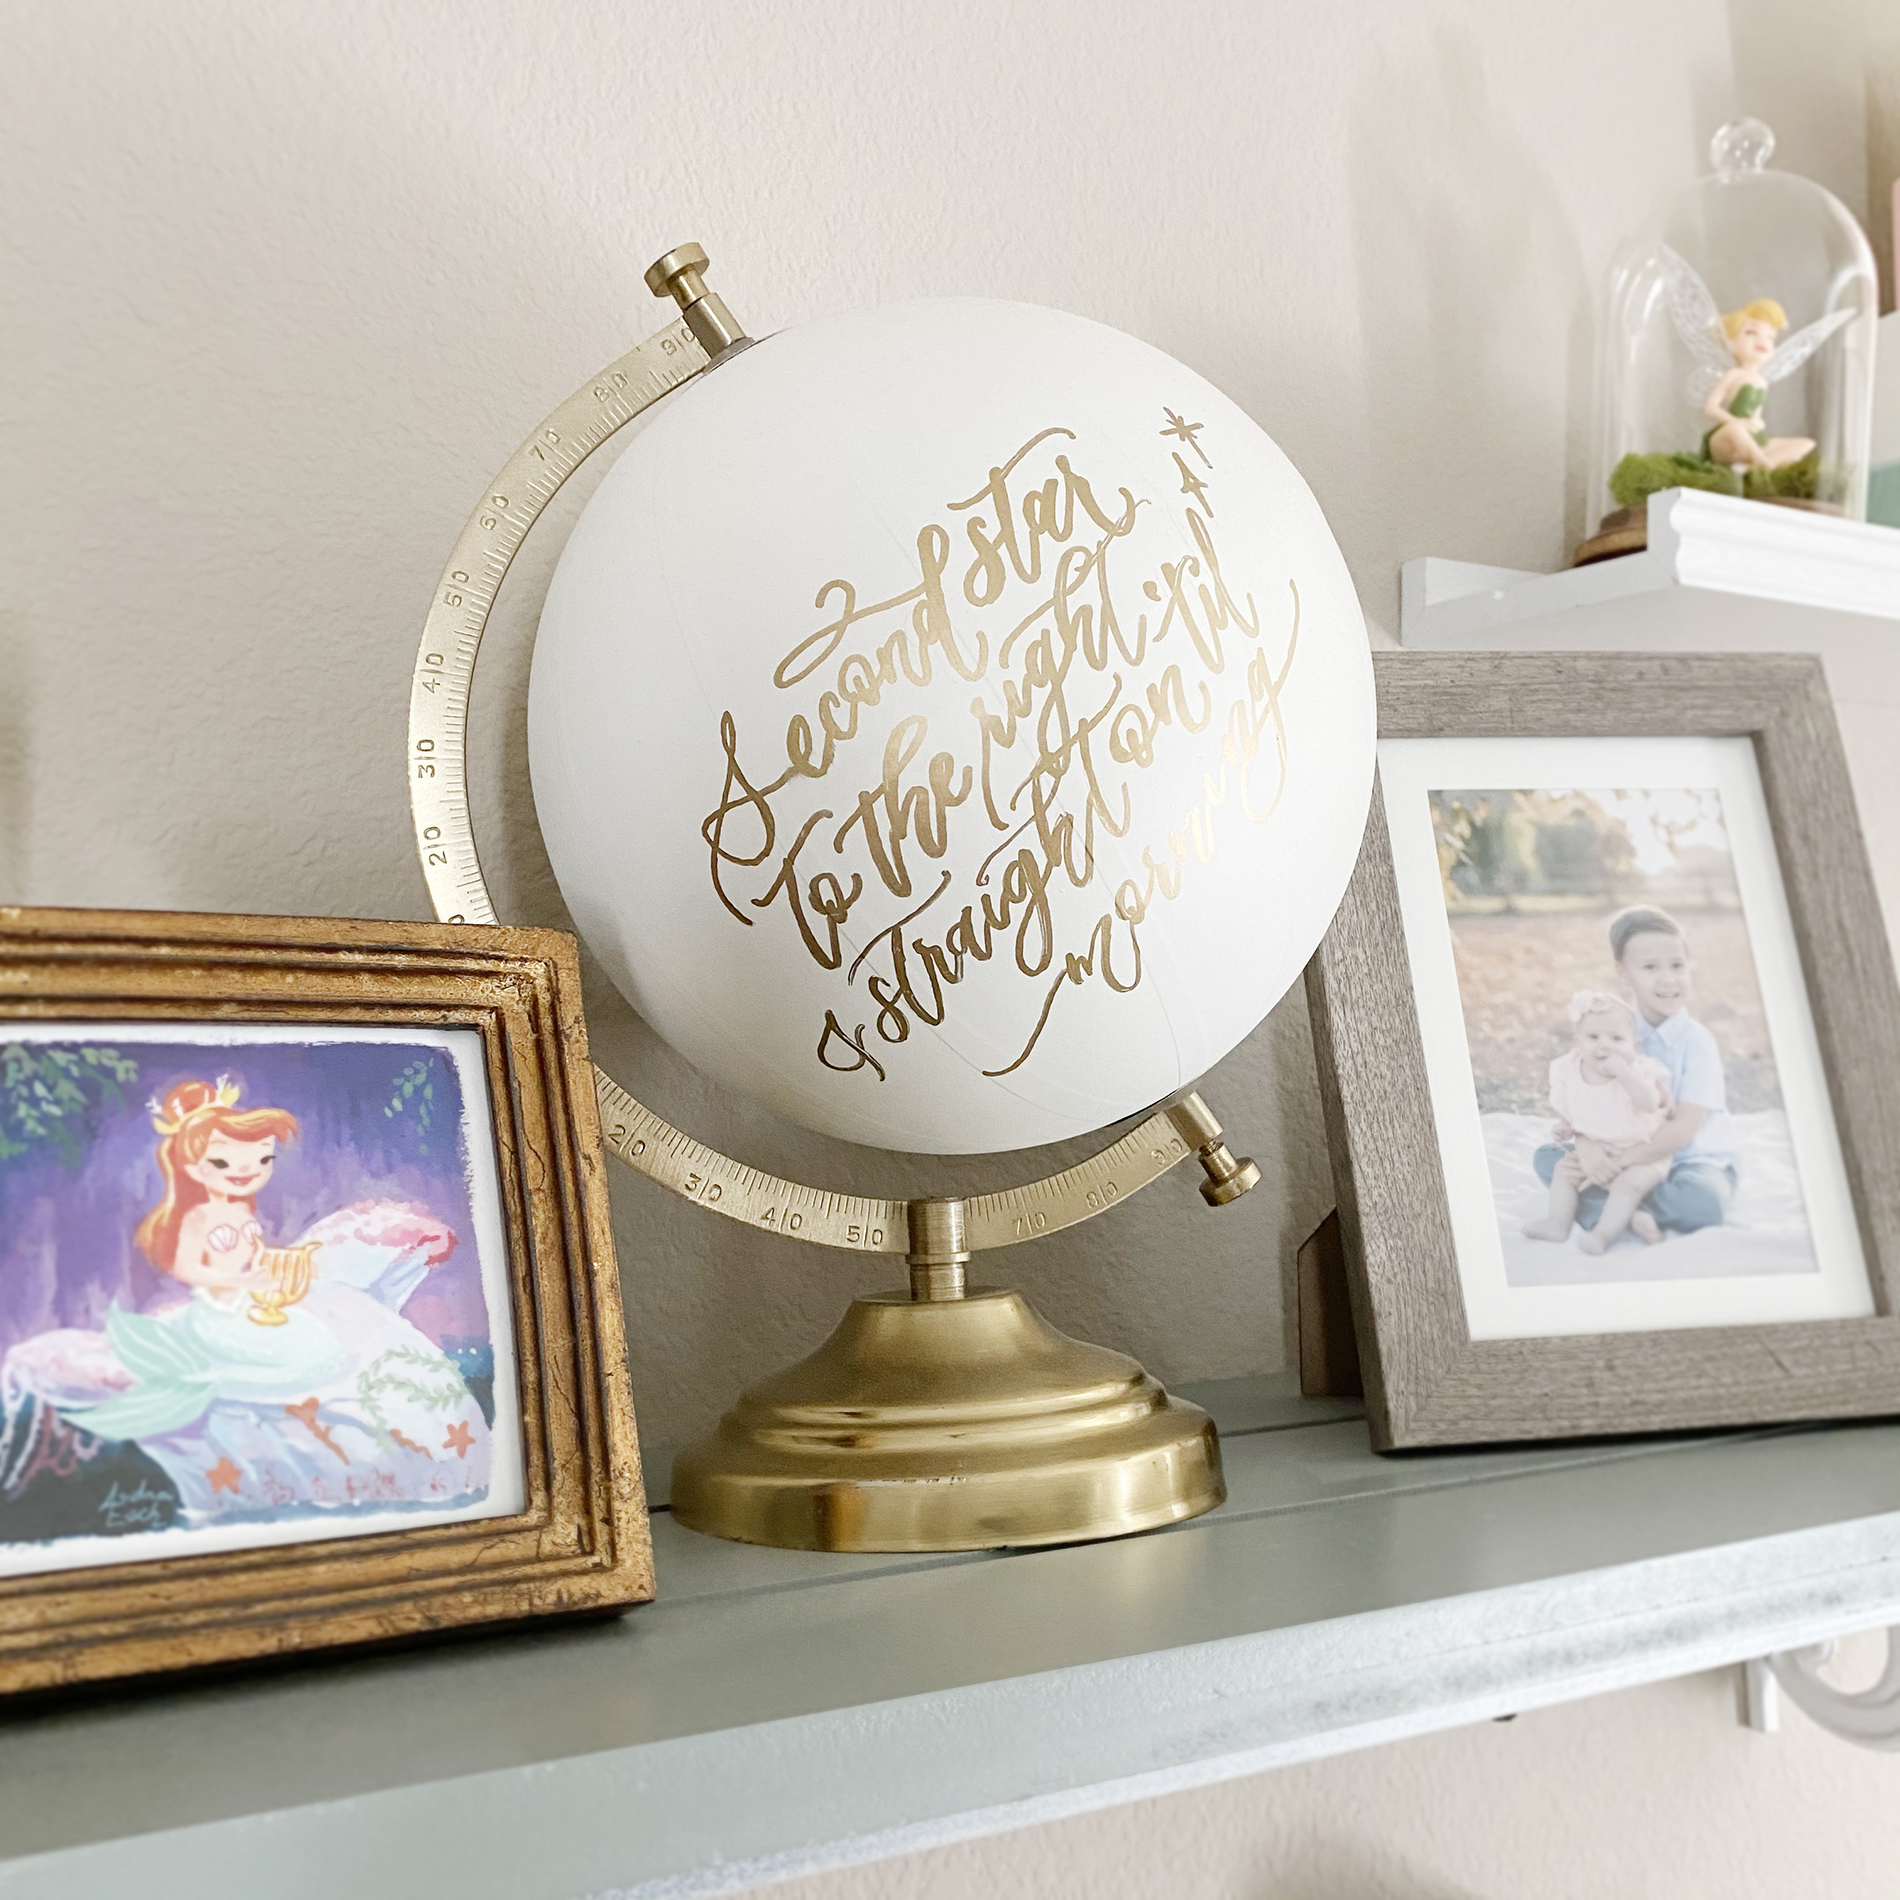 Neverland Baby Girl Boho Nursery Shelves with Handlettered Globe Second Star to the Right